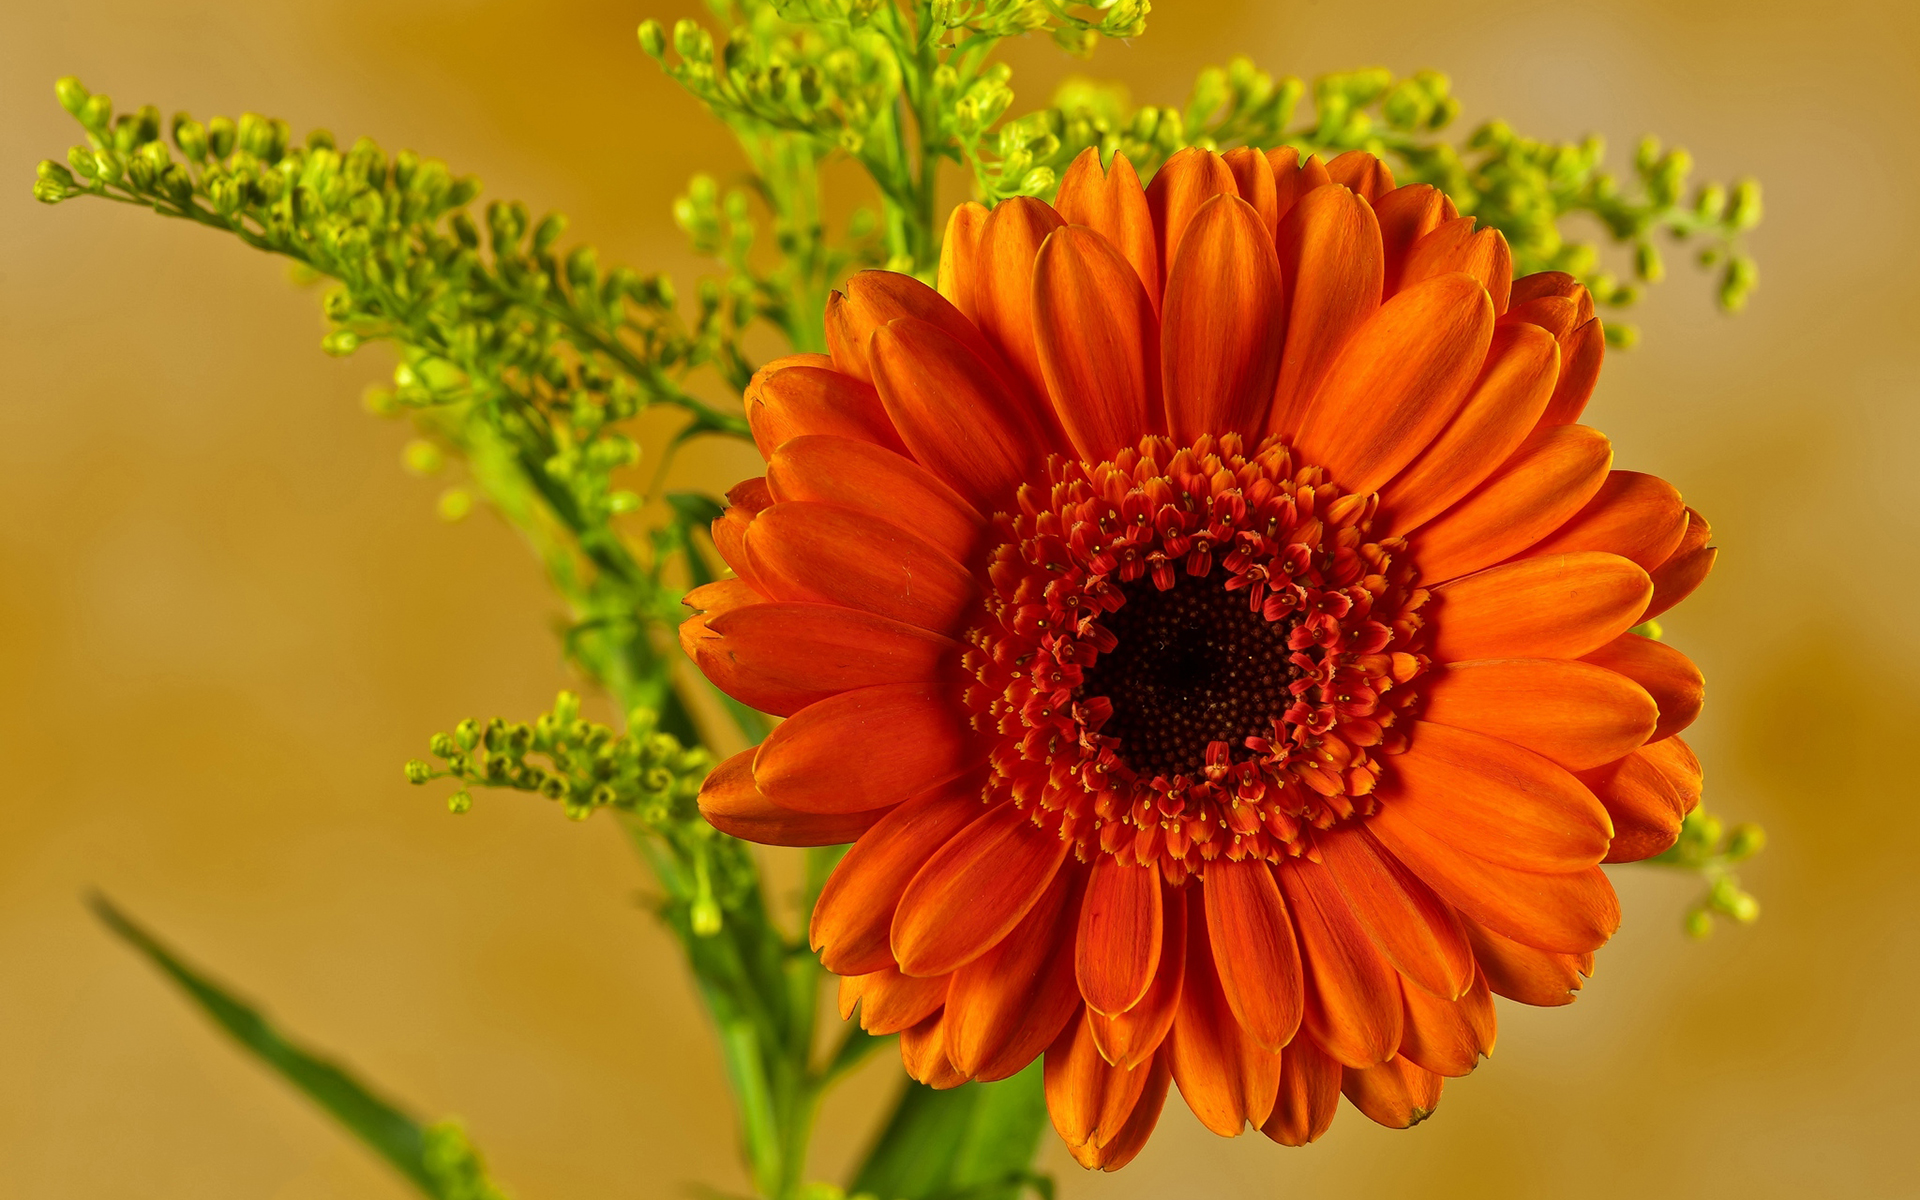 Orange Gerbera Hd Desktop Wallpapers 4k Hd